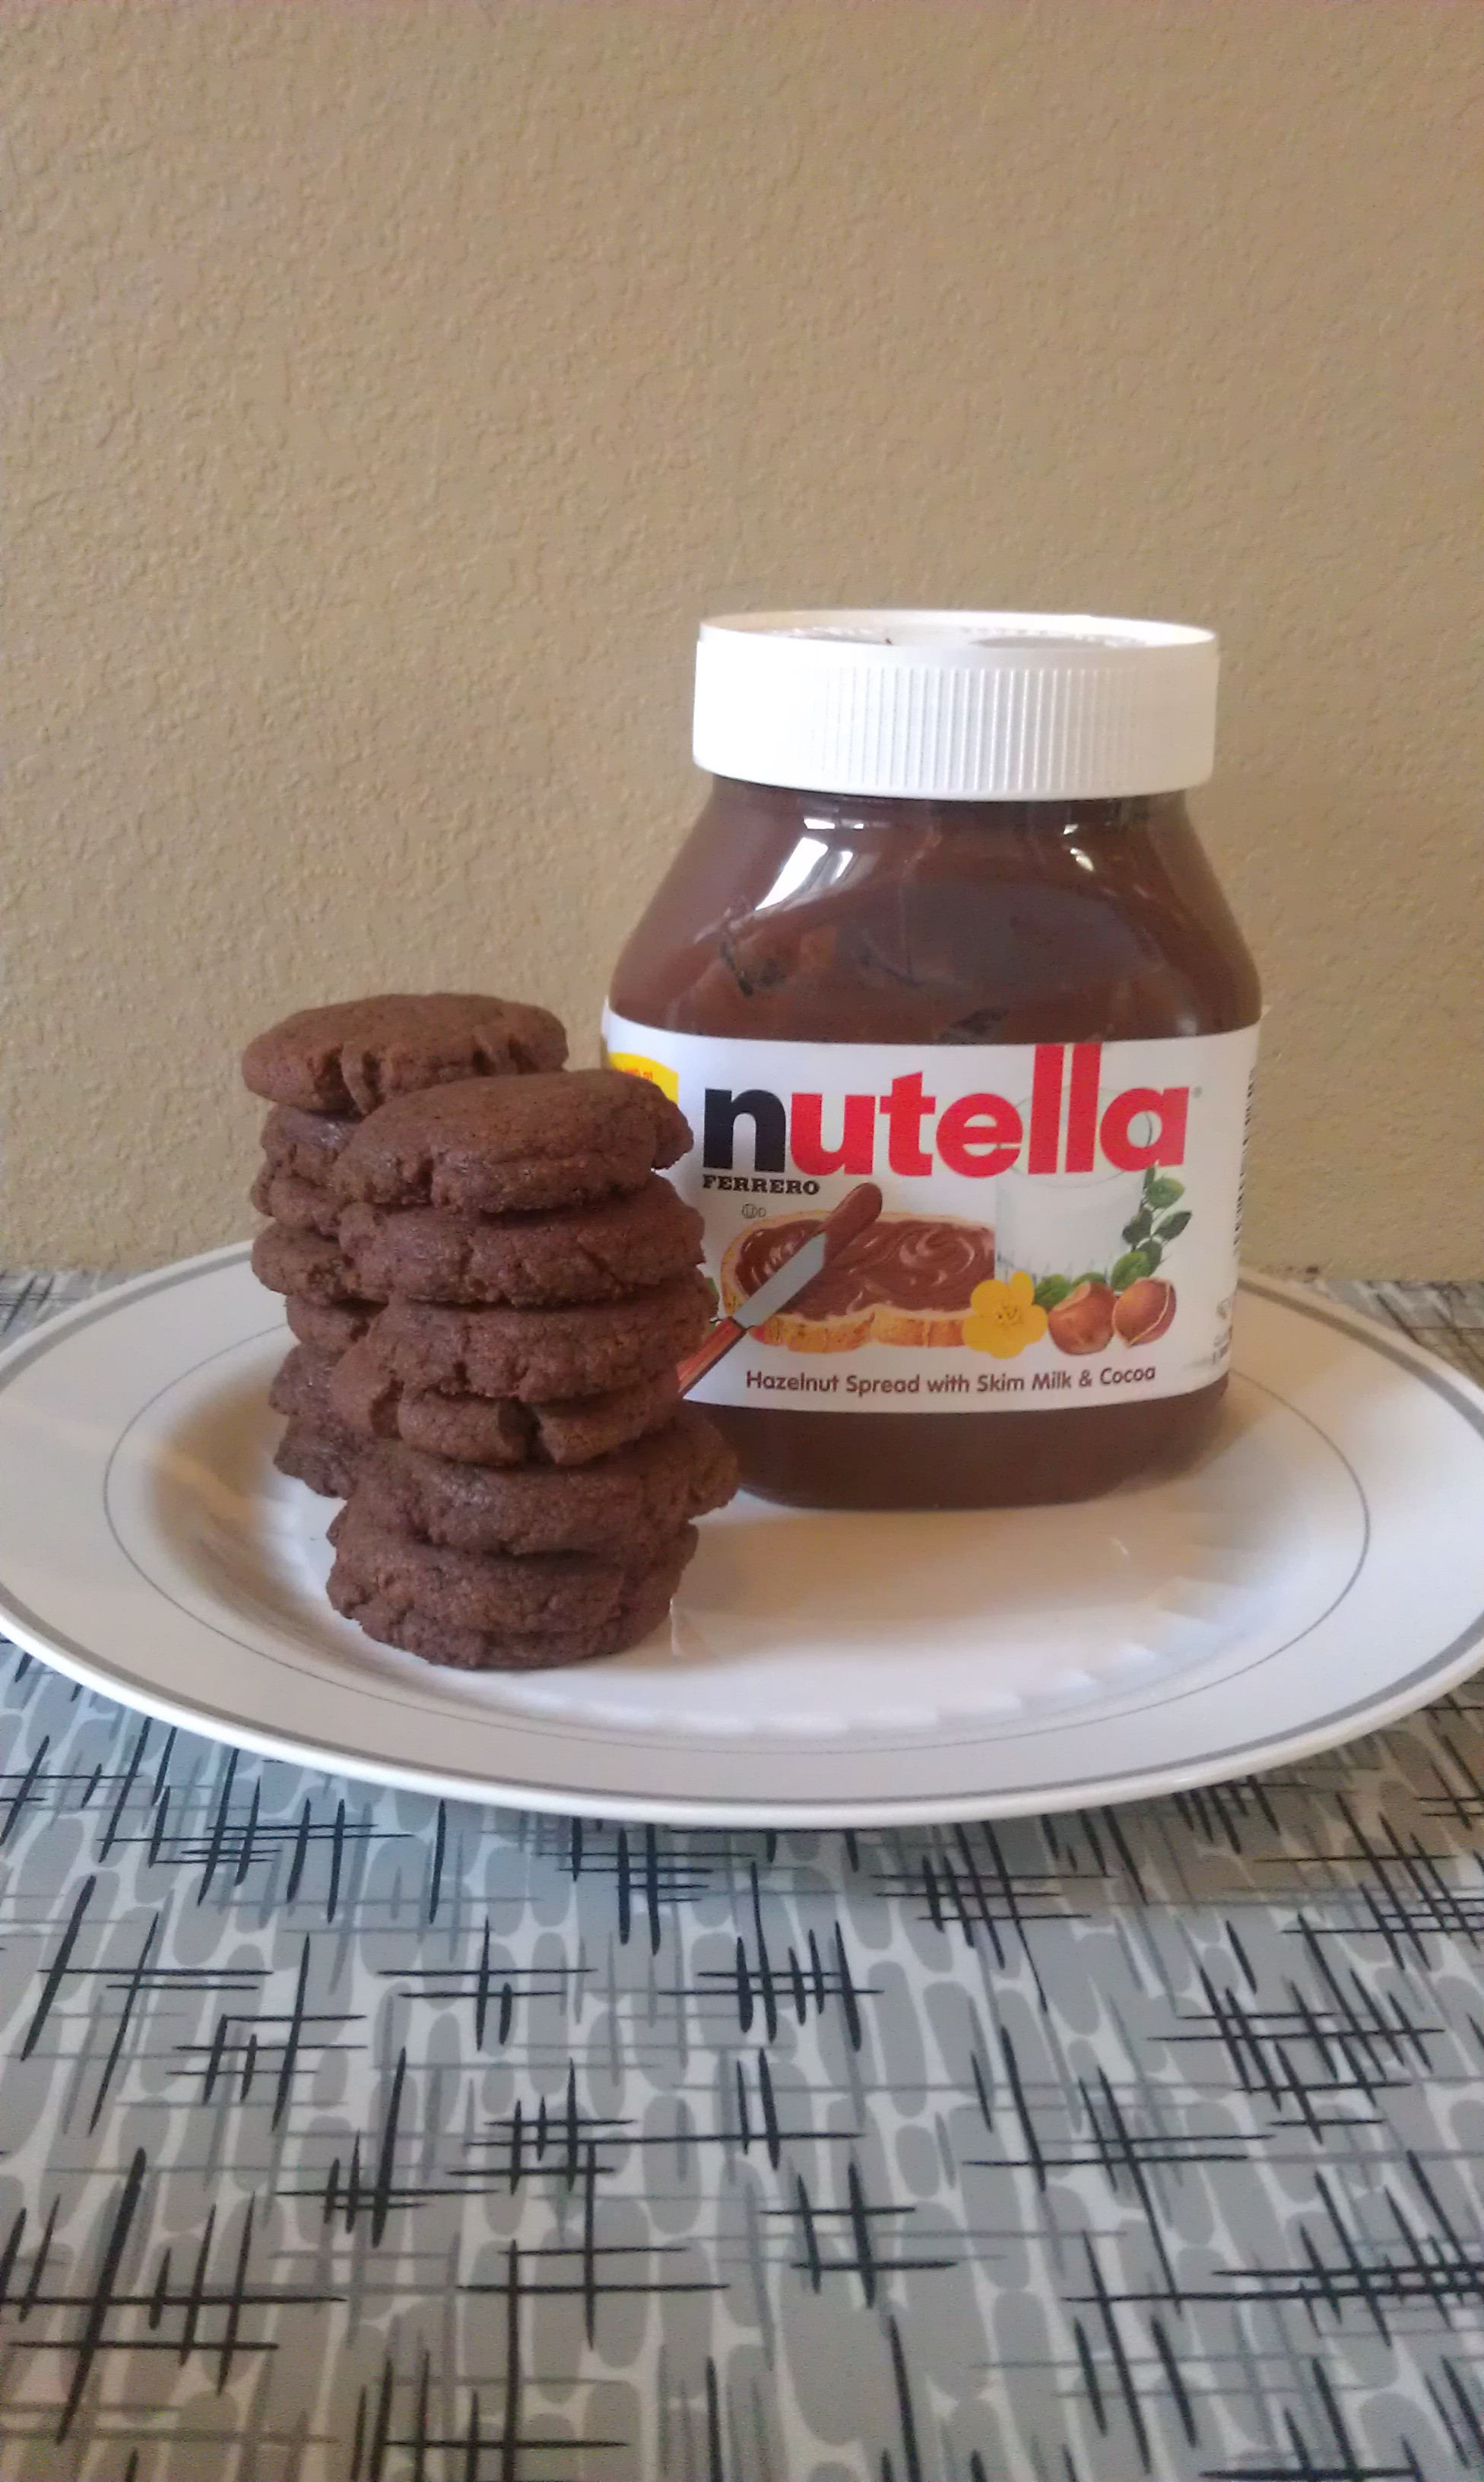 Nutella Cookie Recipe To Make With Kids